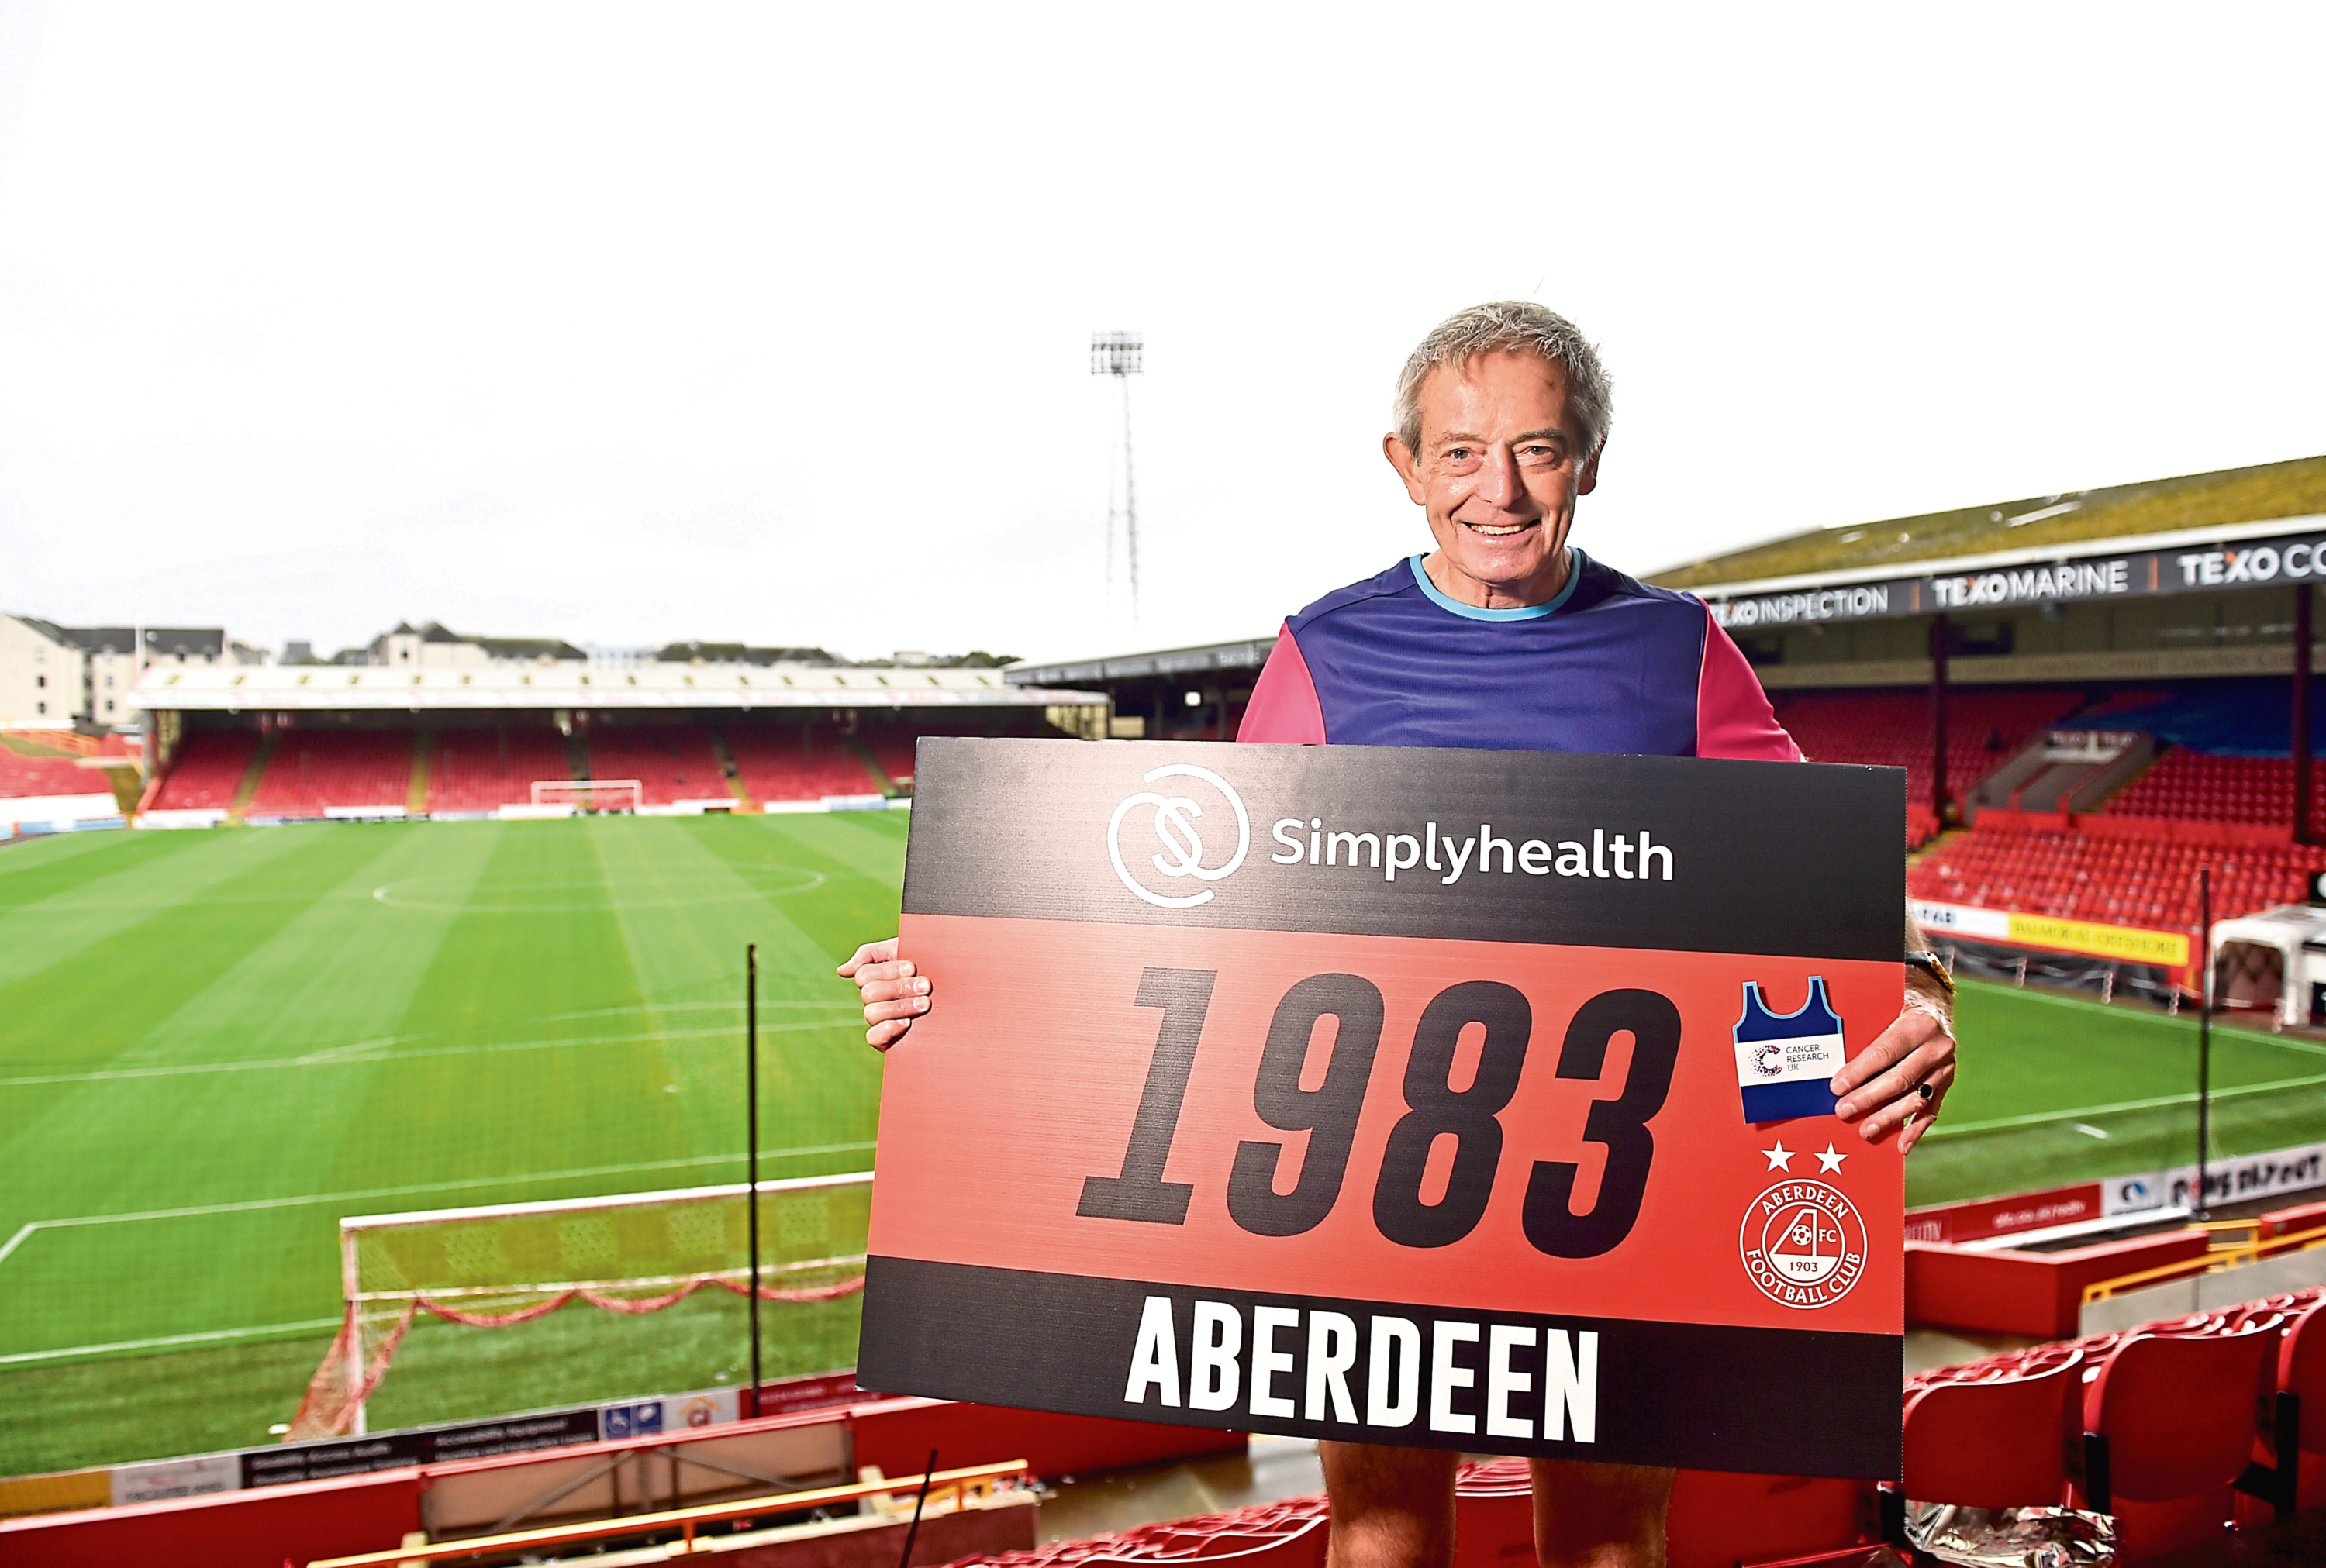 Neil has been given the number 1983